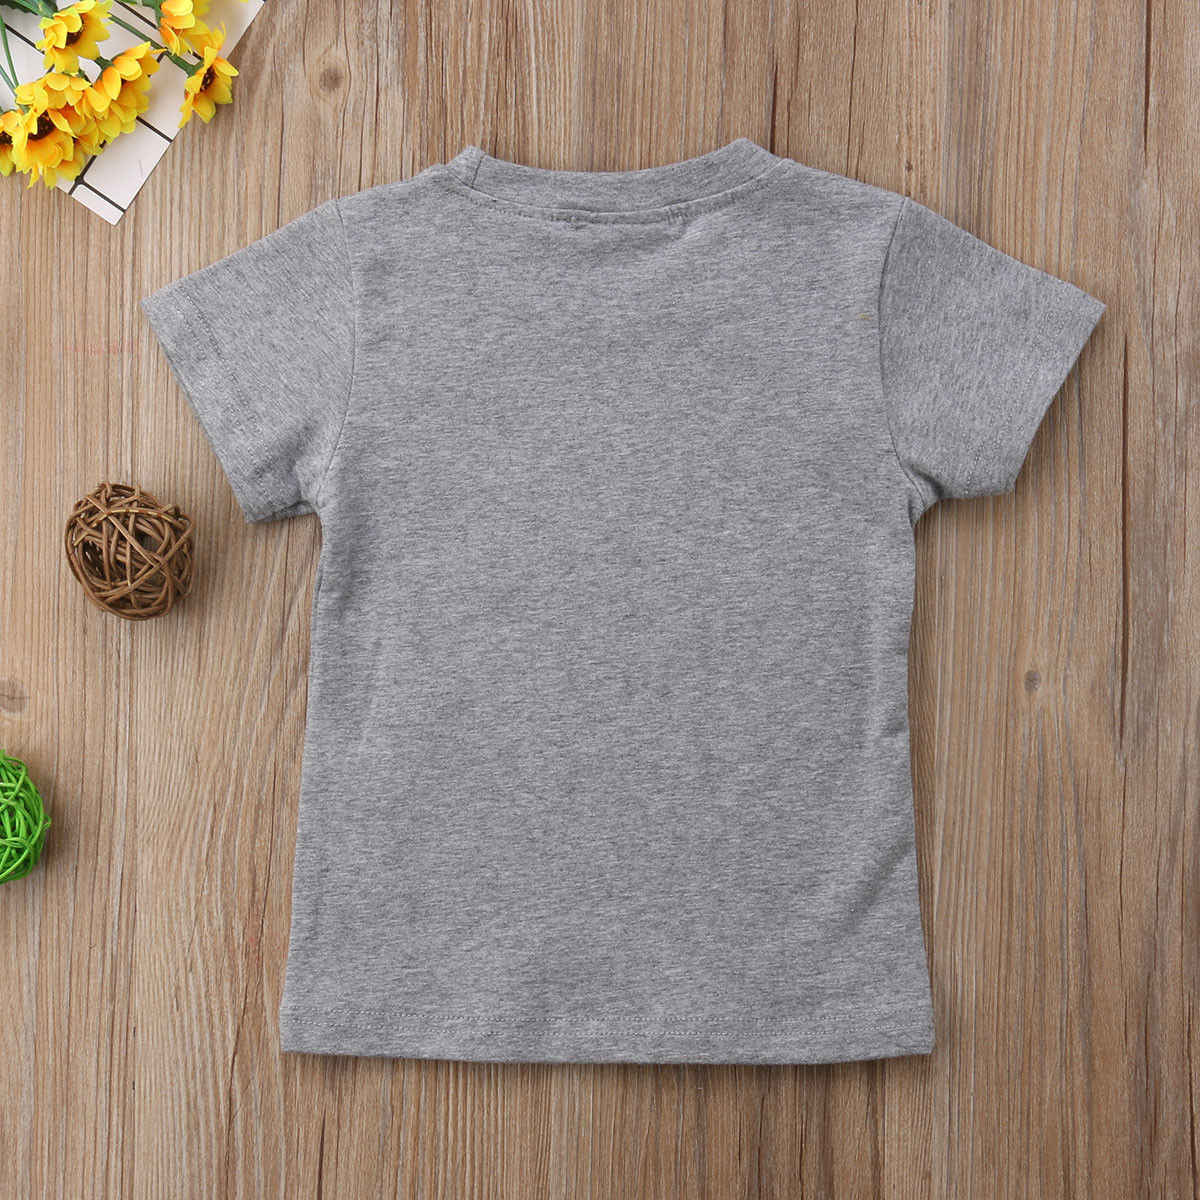 f90b6a619 ... Kids Baby Girl Boy Love Daddy Mama Tops T-shirts Graphic Tee Clothes  Summer ...